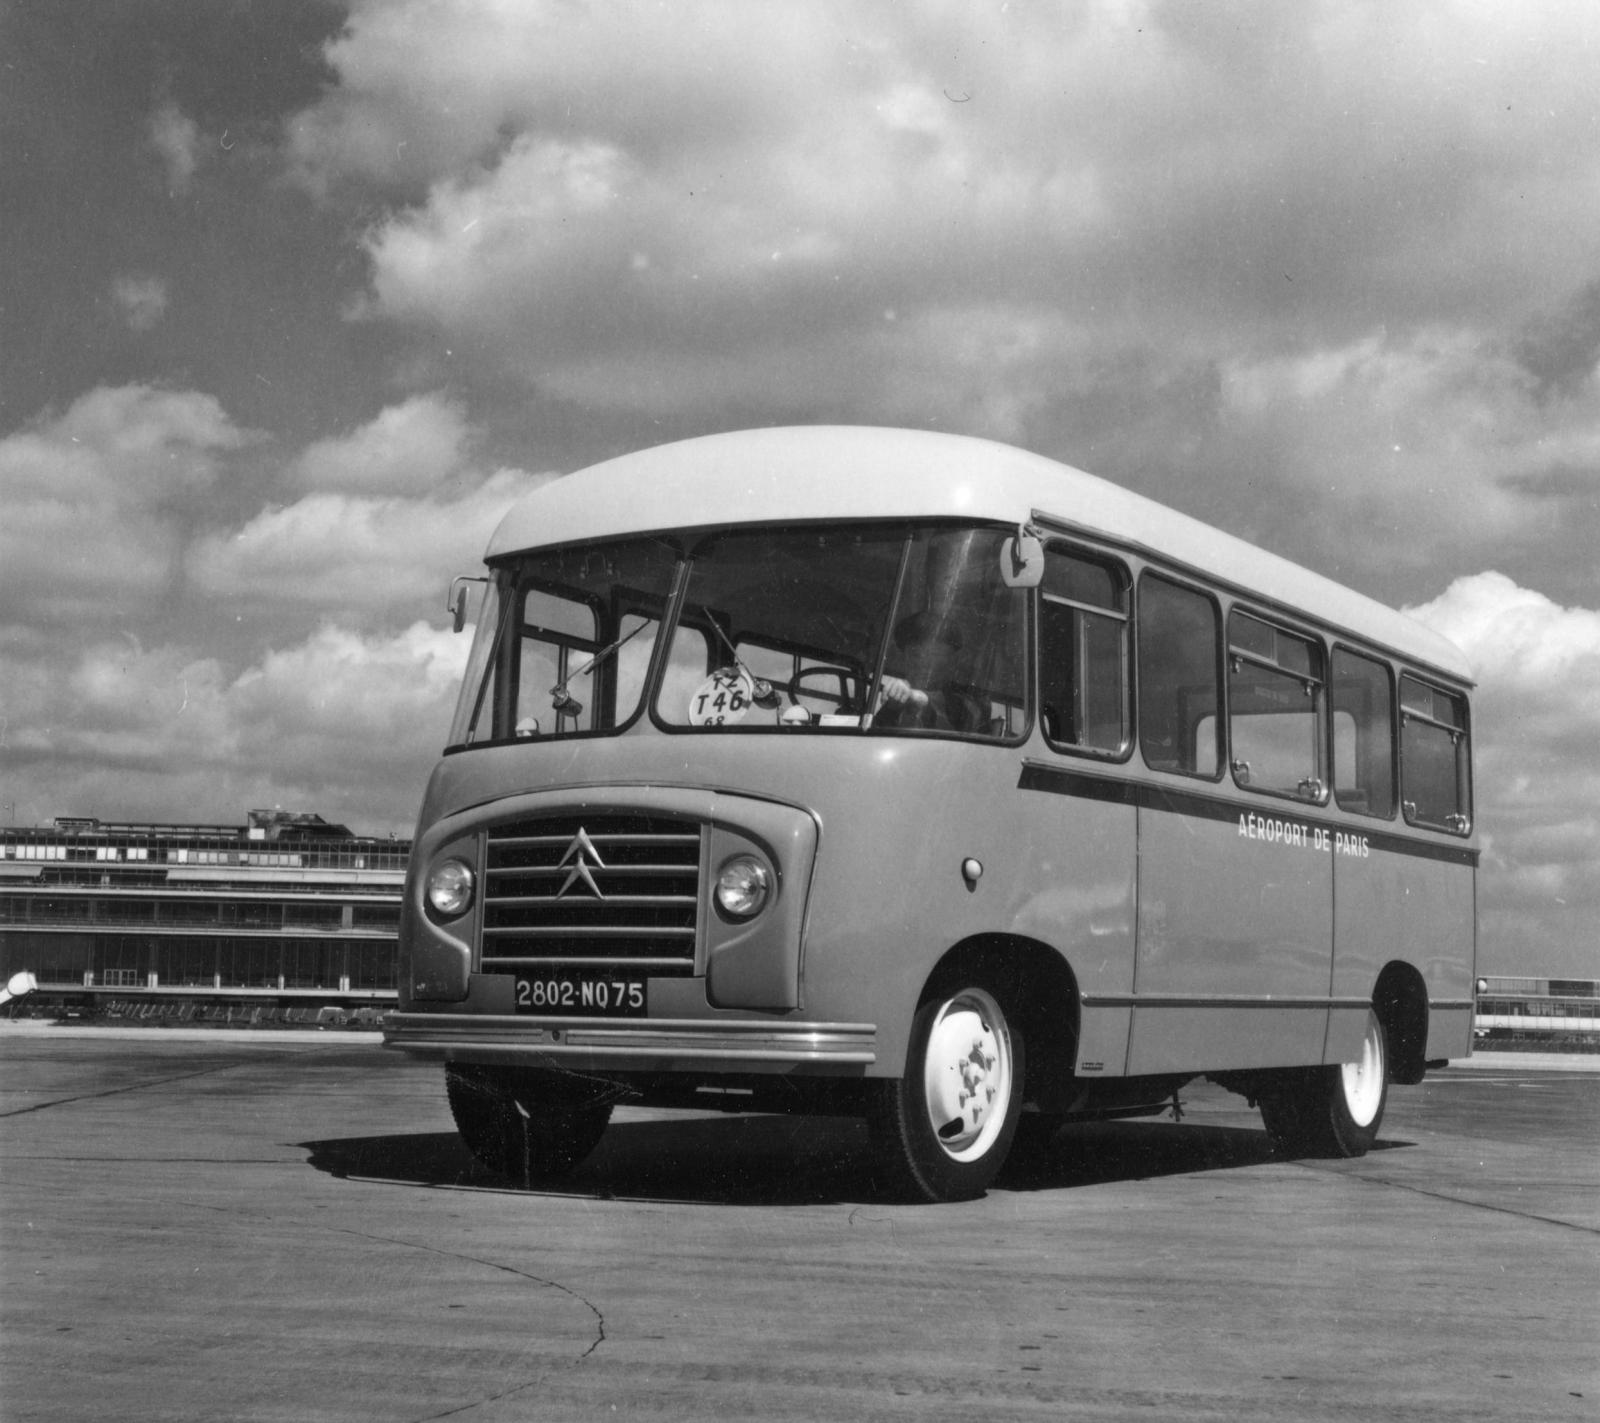 Aéroport de Paris Citroën Bus